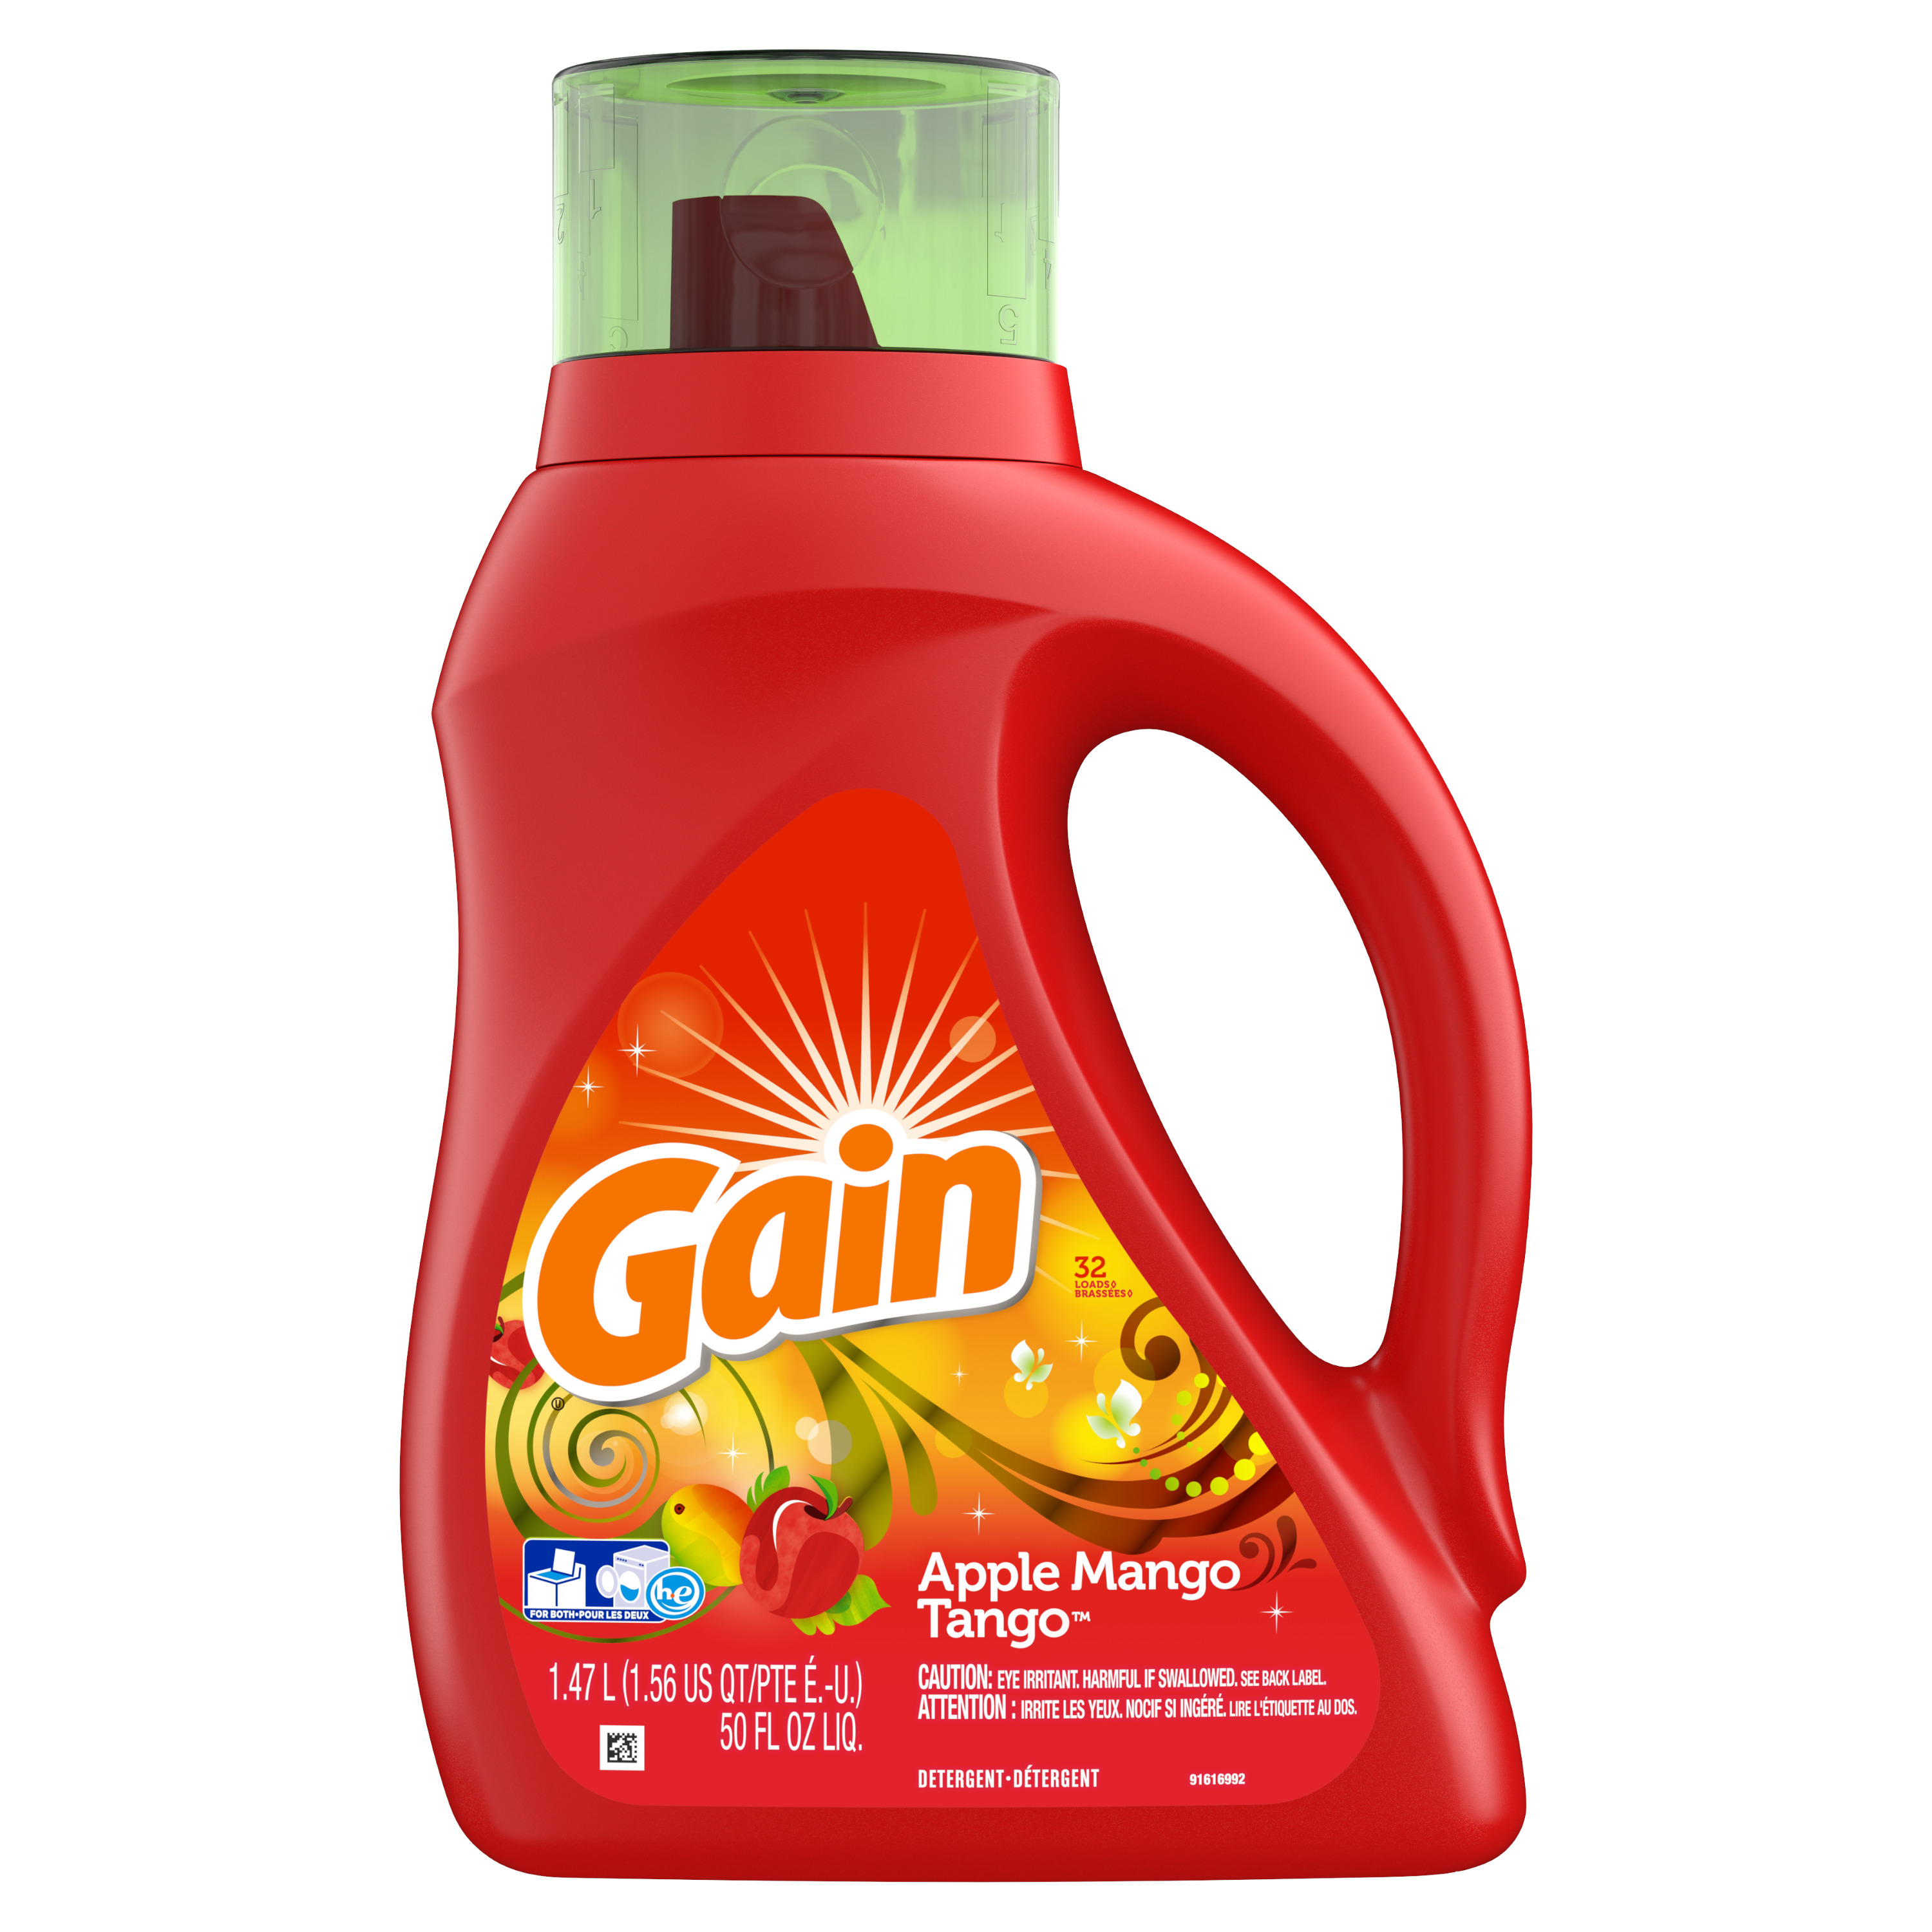 Gain Liquid Laundry Detergent, Apple Mango Tango, 32 Loads, 50 fl oz